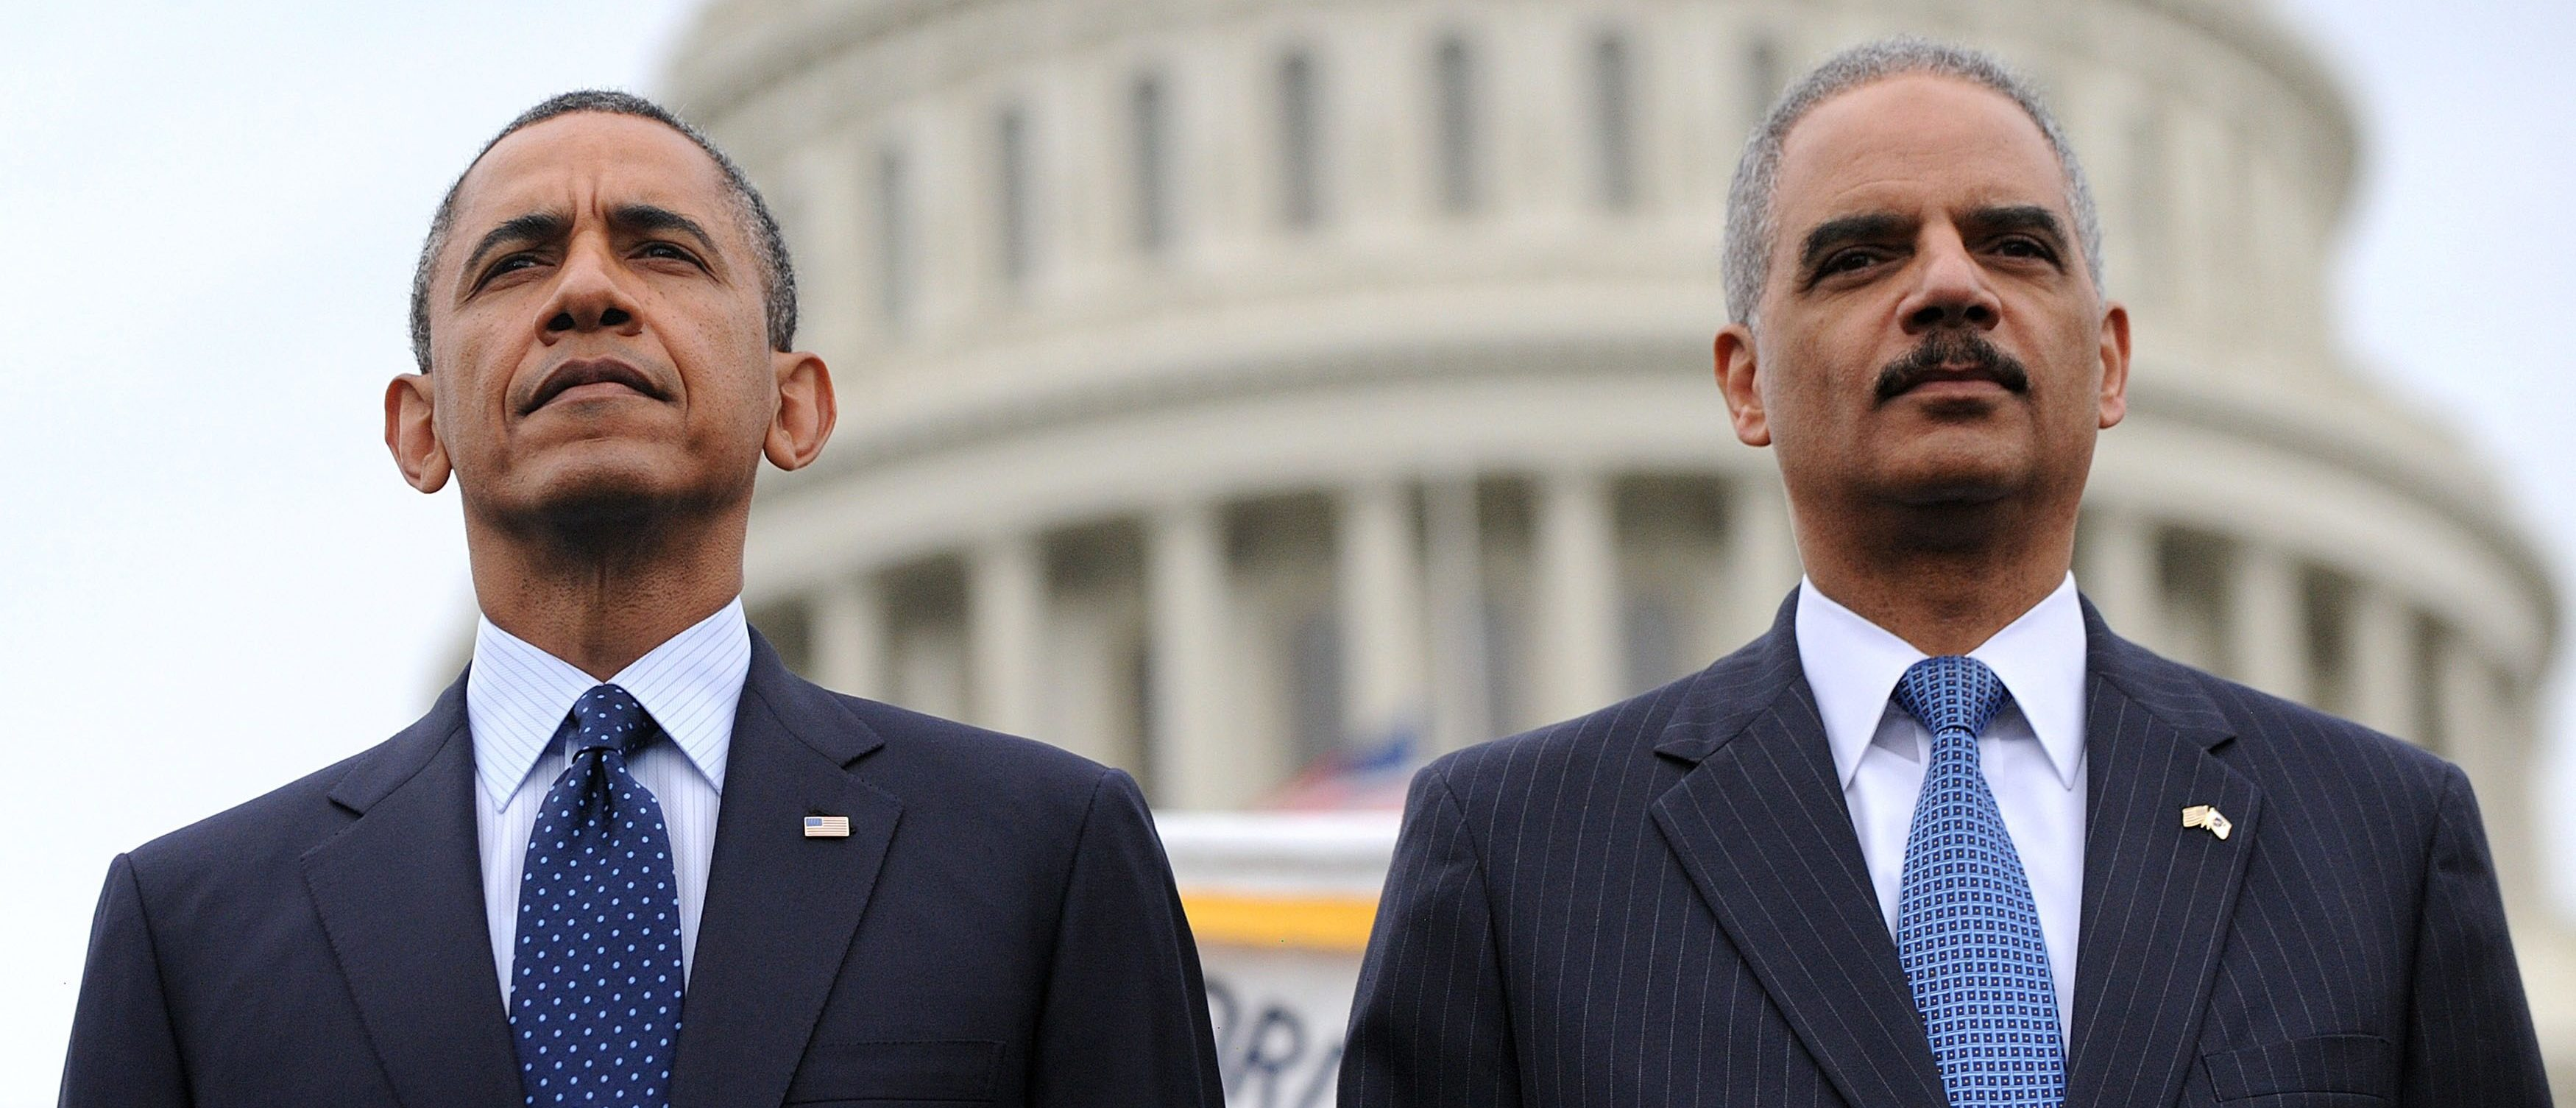 WASHINGTON, DC - MAY 15: (AFP OUT) U.S. President Barack Obama (L) and Attorney General Eric Holder attend the 32nd annual National Peace Officers' Memorial Service at the West Front Lawn at the U.S. Capitol May 15, 2013 in Washington, DC. President Barack Obama delivered remarks at the event, invoking the law enforcement officers who worked to bring the Boston Marathon bombing suspects to justice. (Photo by Olivier Douliery - Pool/Getty Images)